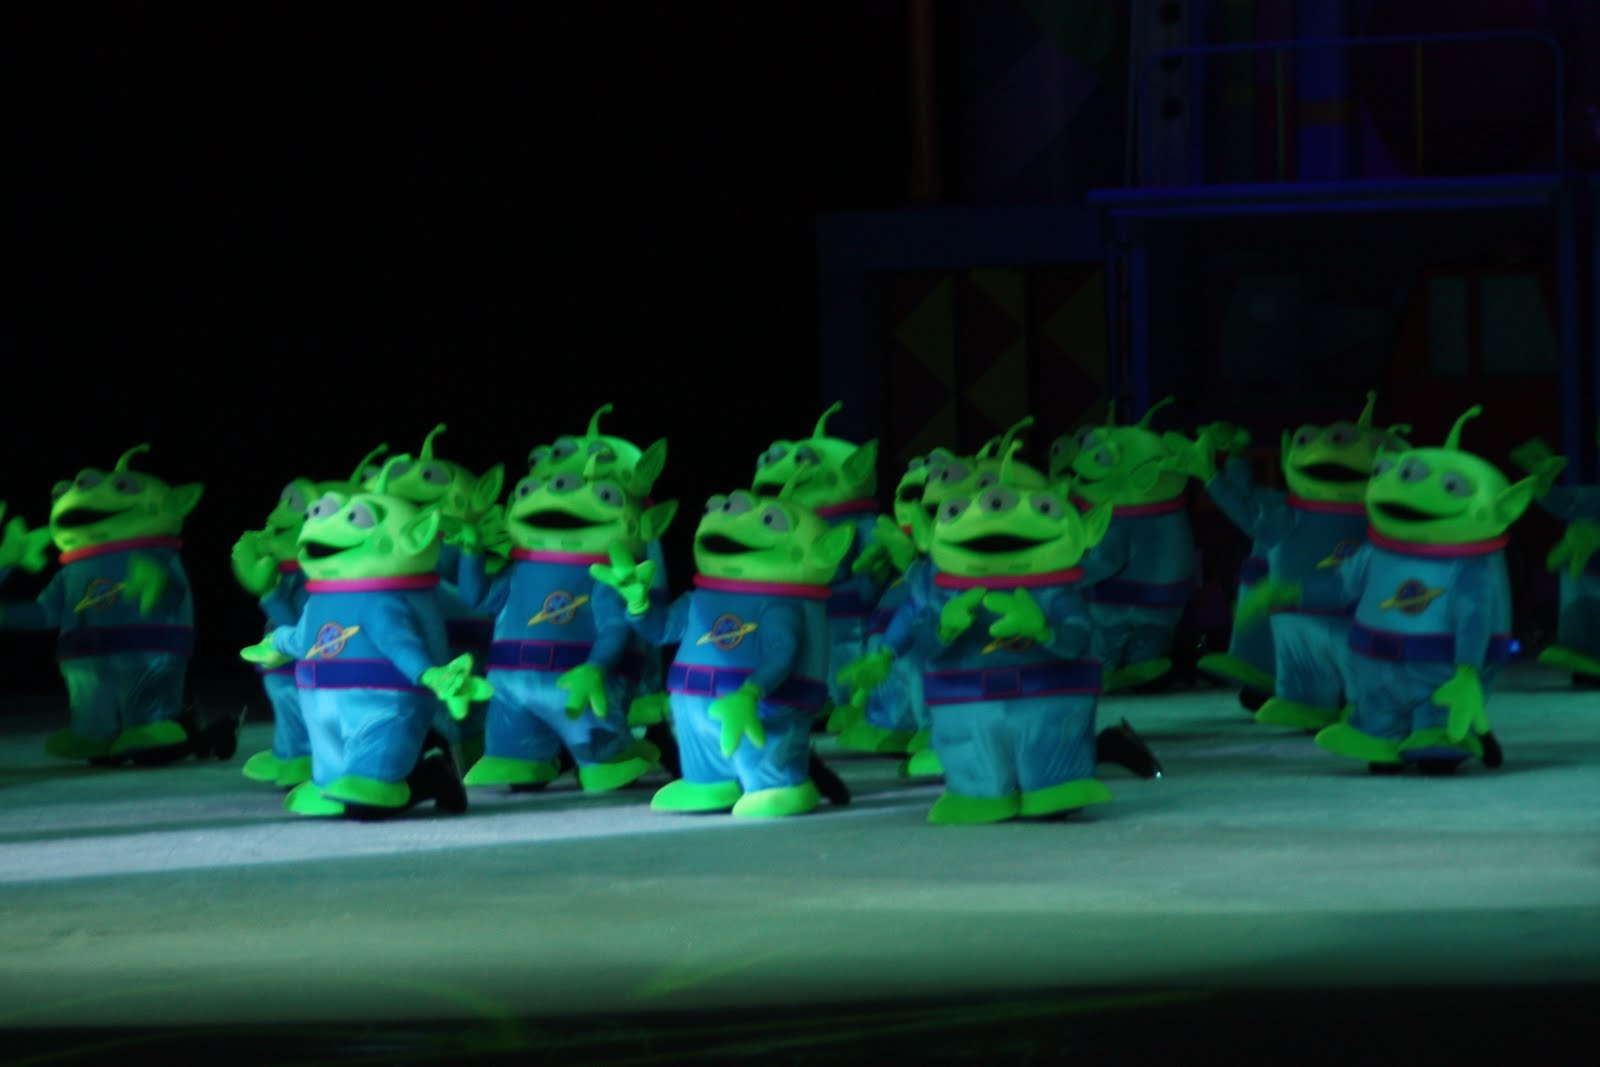 aliens toy story ooo - photo #8